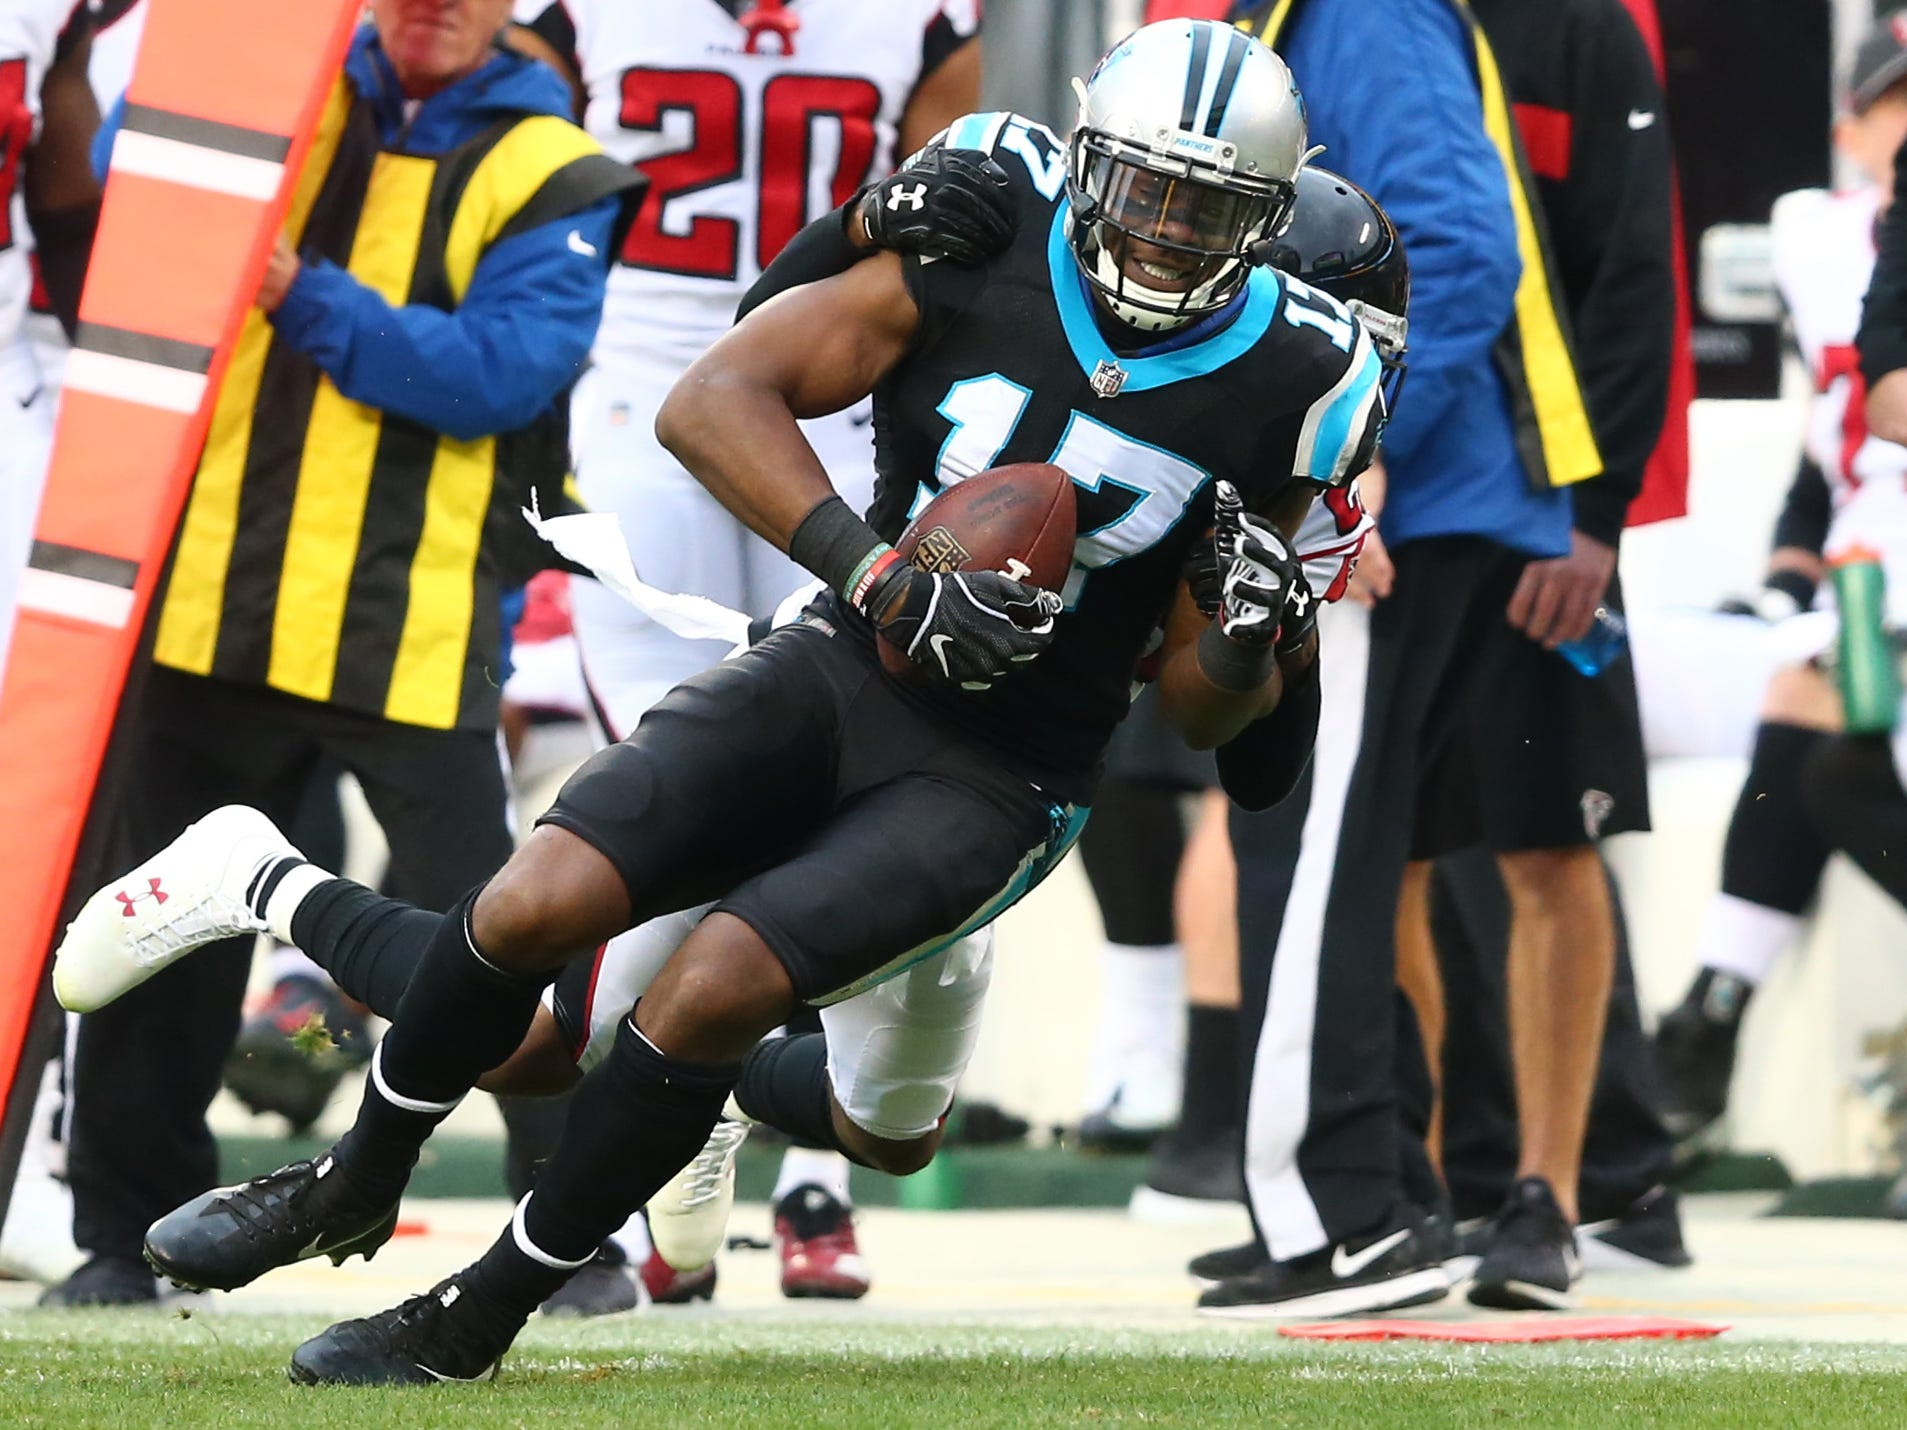 Cap-rich Colts open their free agency spending with WR Devin Funchess